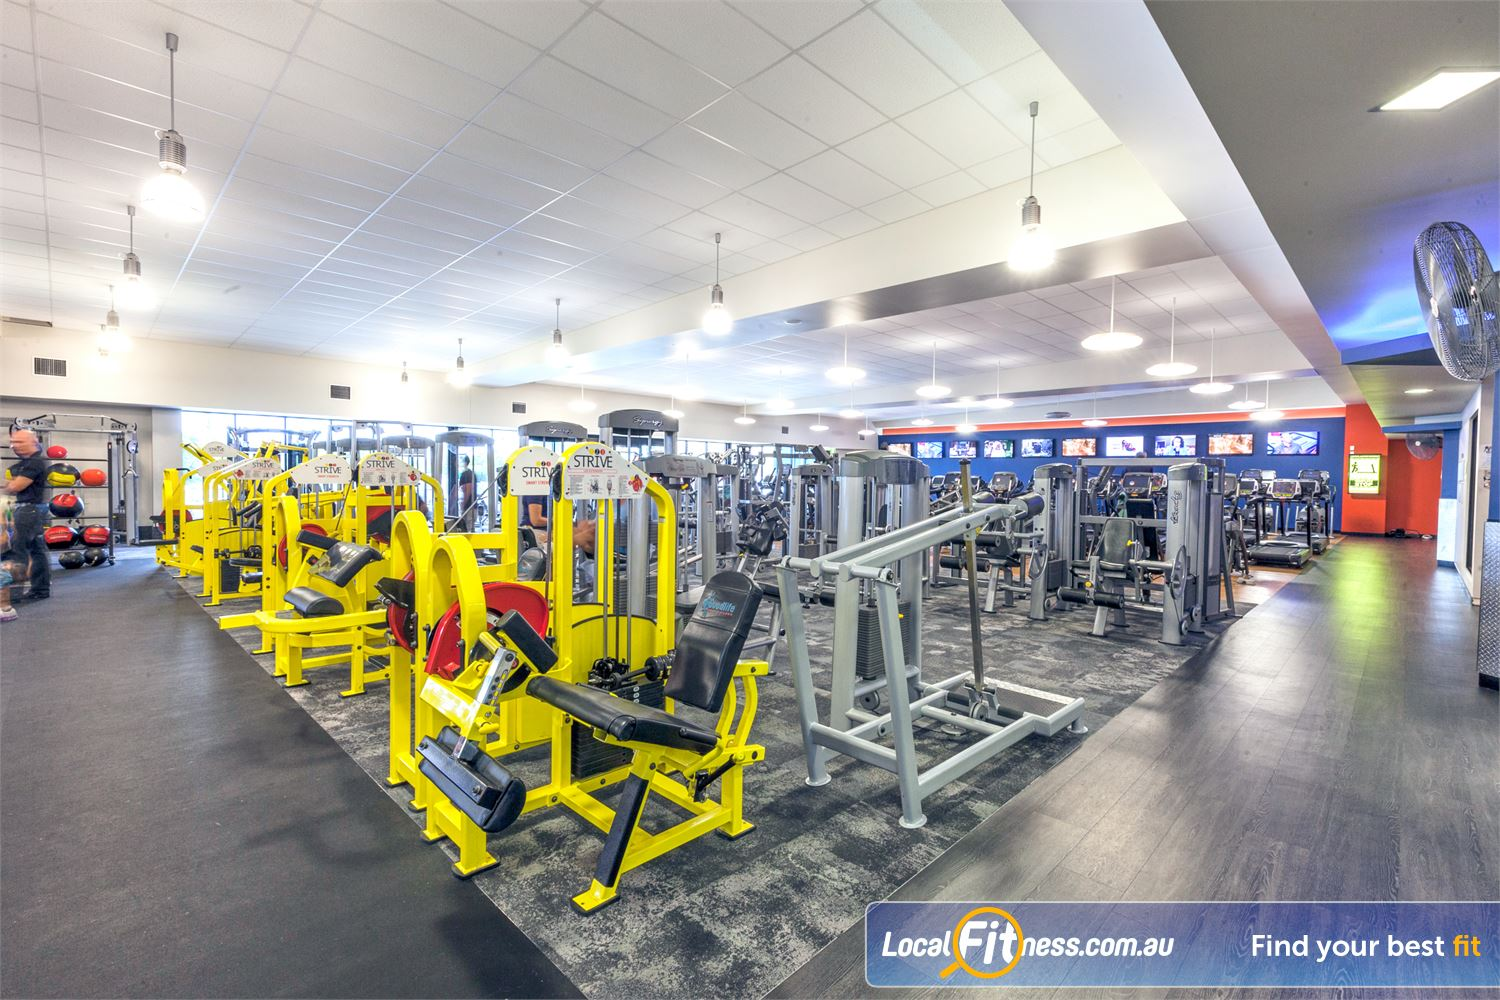 Goodlife Health Clubs Caloundra Our Caloundra gym features a wide selection of pin-loaded machines.